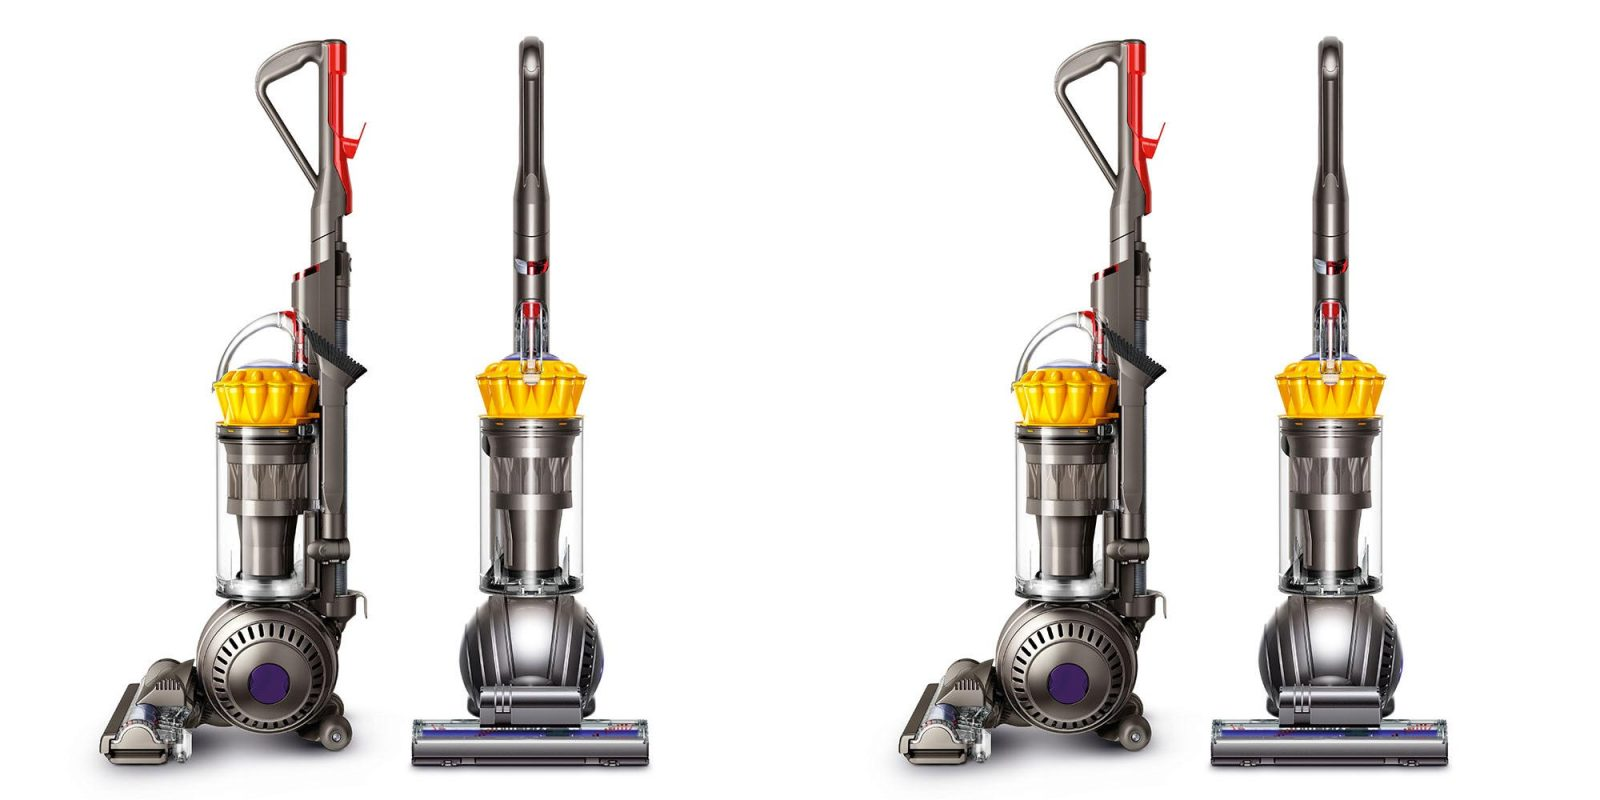 Dyson S Up13 Ball Vacuum Drops To 135 Shipped Refurb